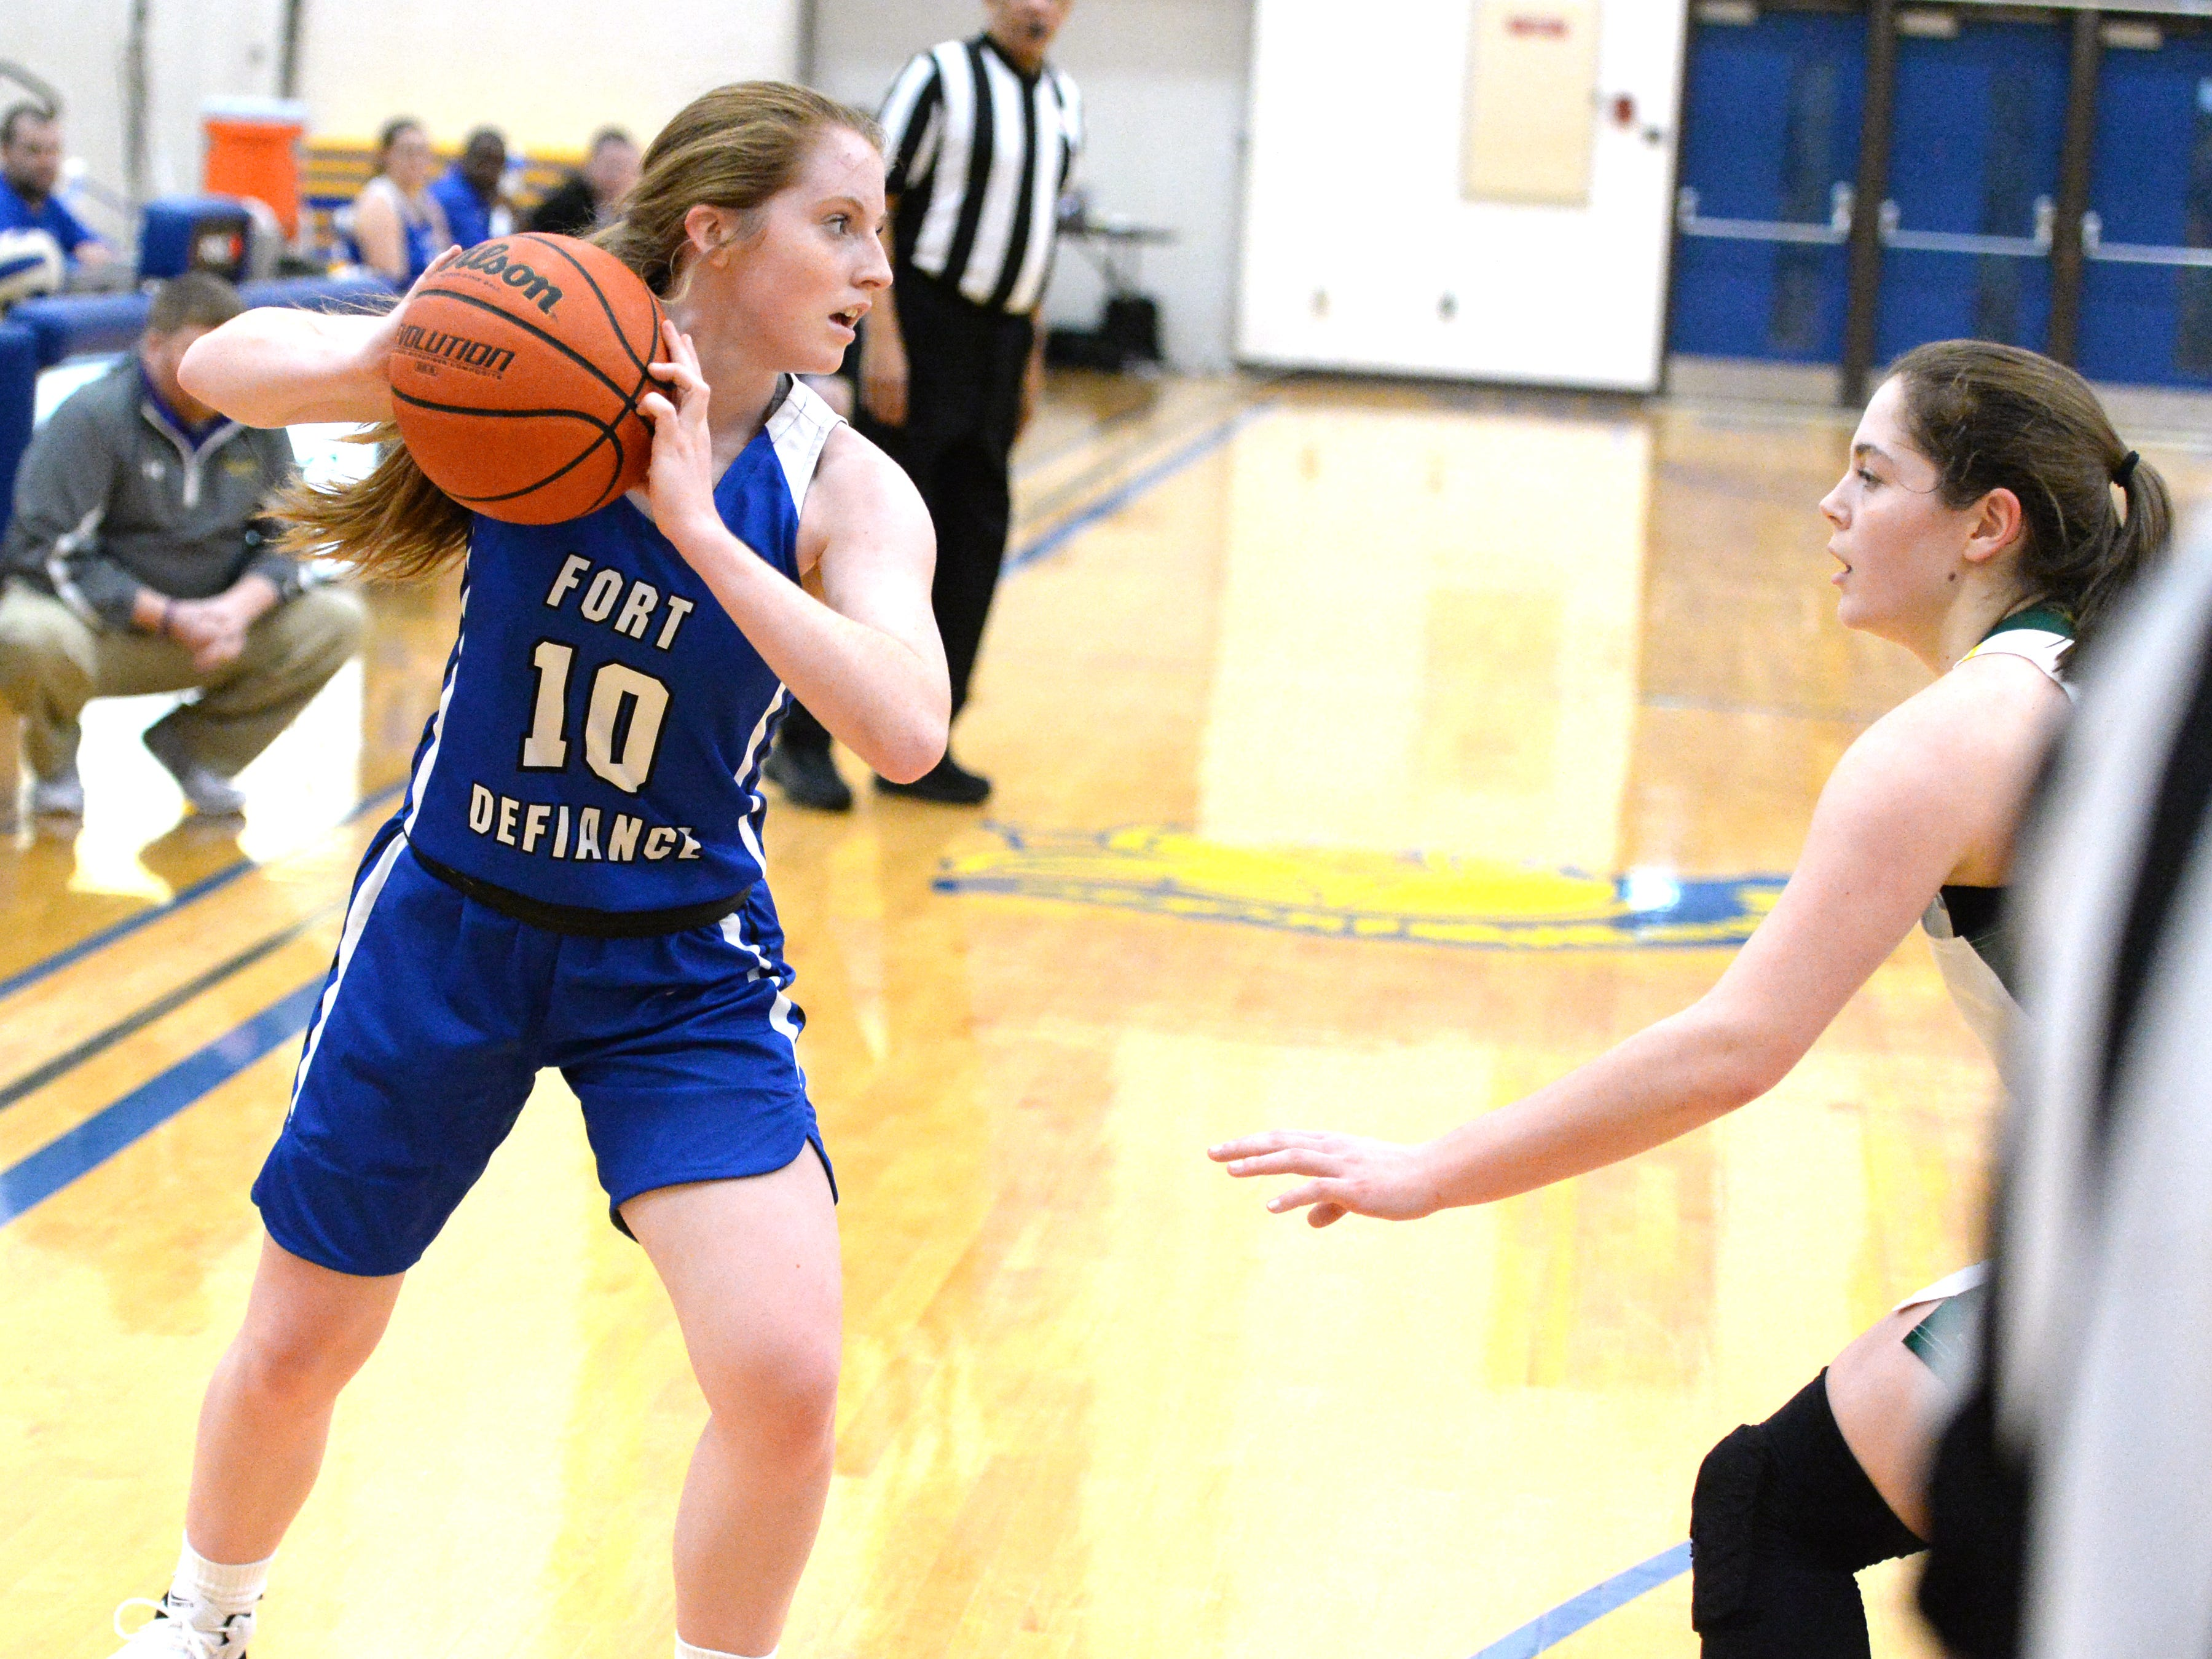 Fort Defiance's Bri Allen looks for an open teammate Saturday at the Play of Preemies Showcase at Western Albemarle High School.